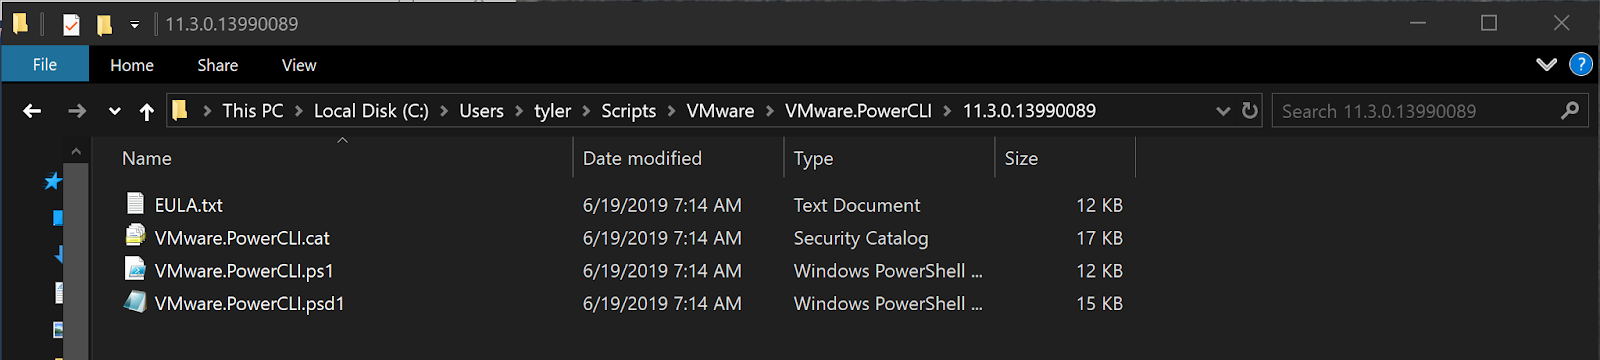 VMware.PowerCLI module contents